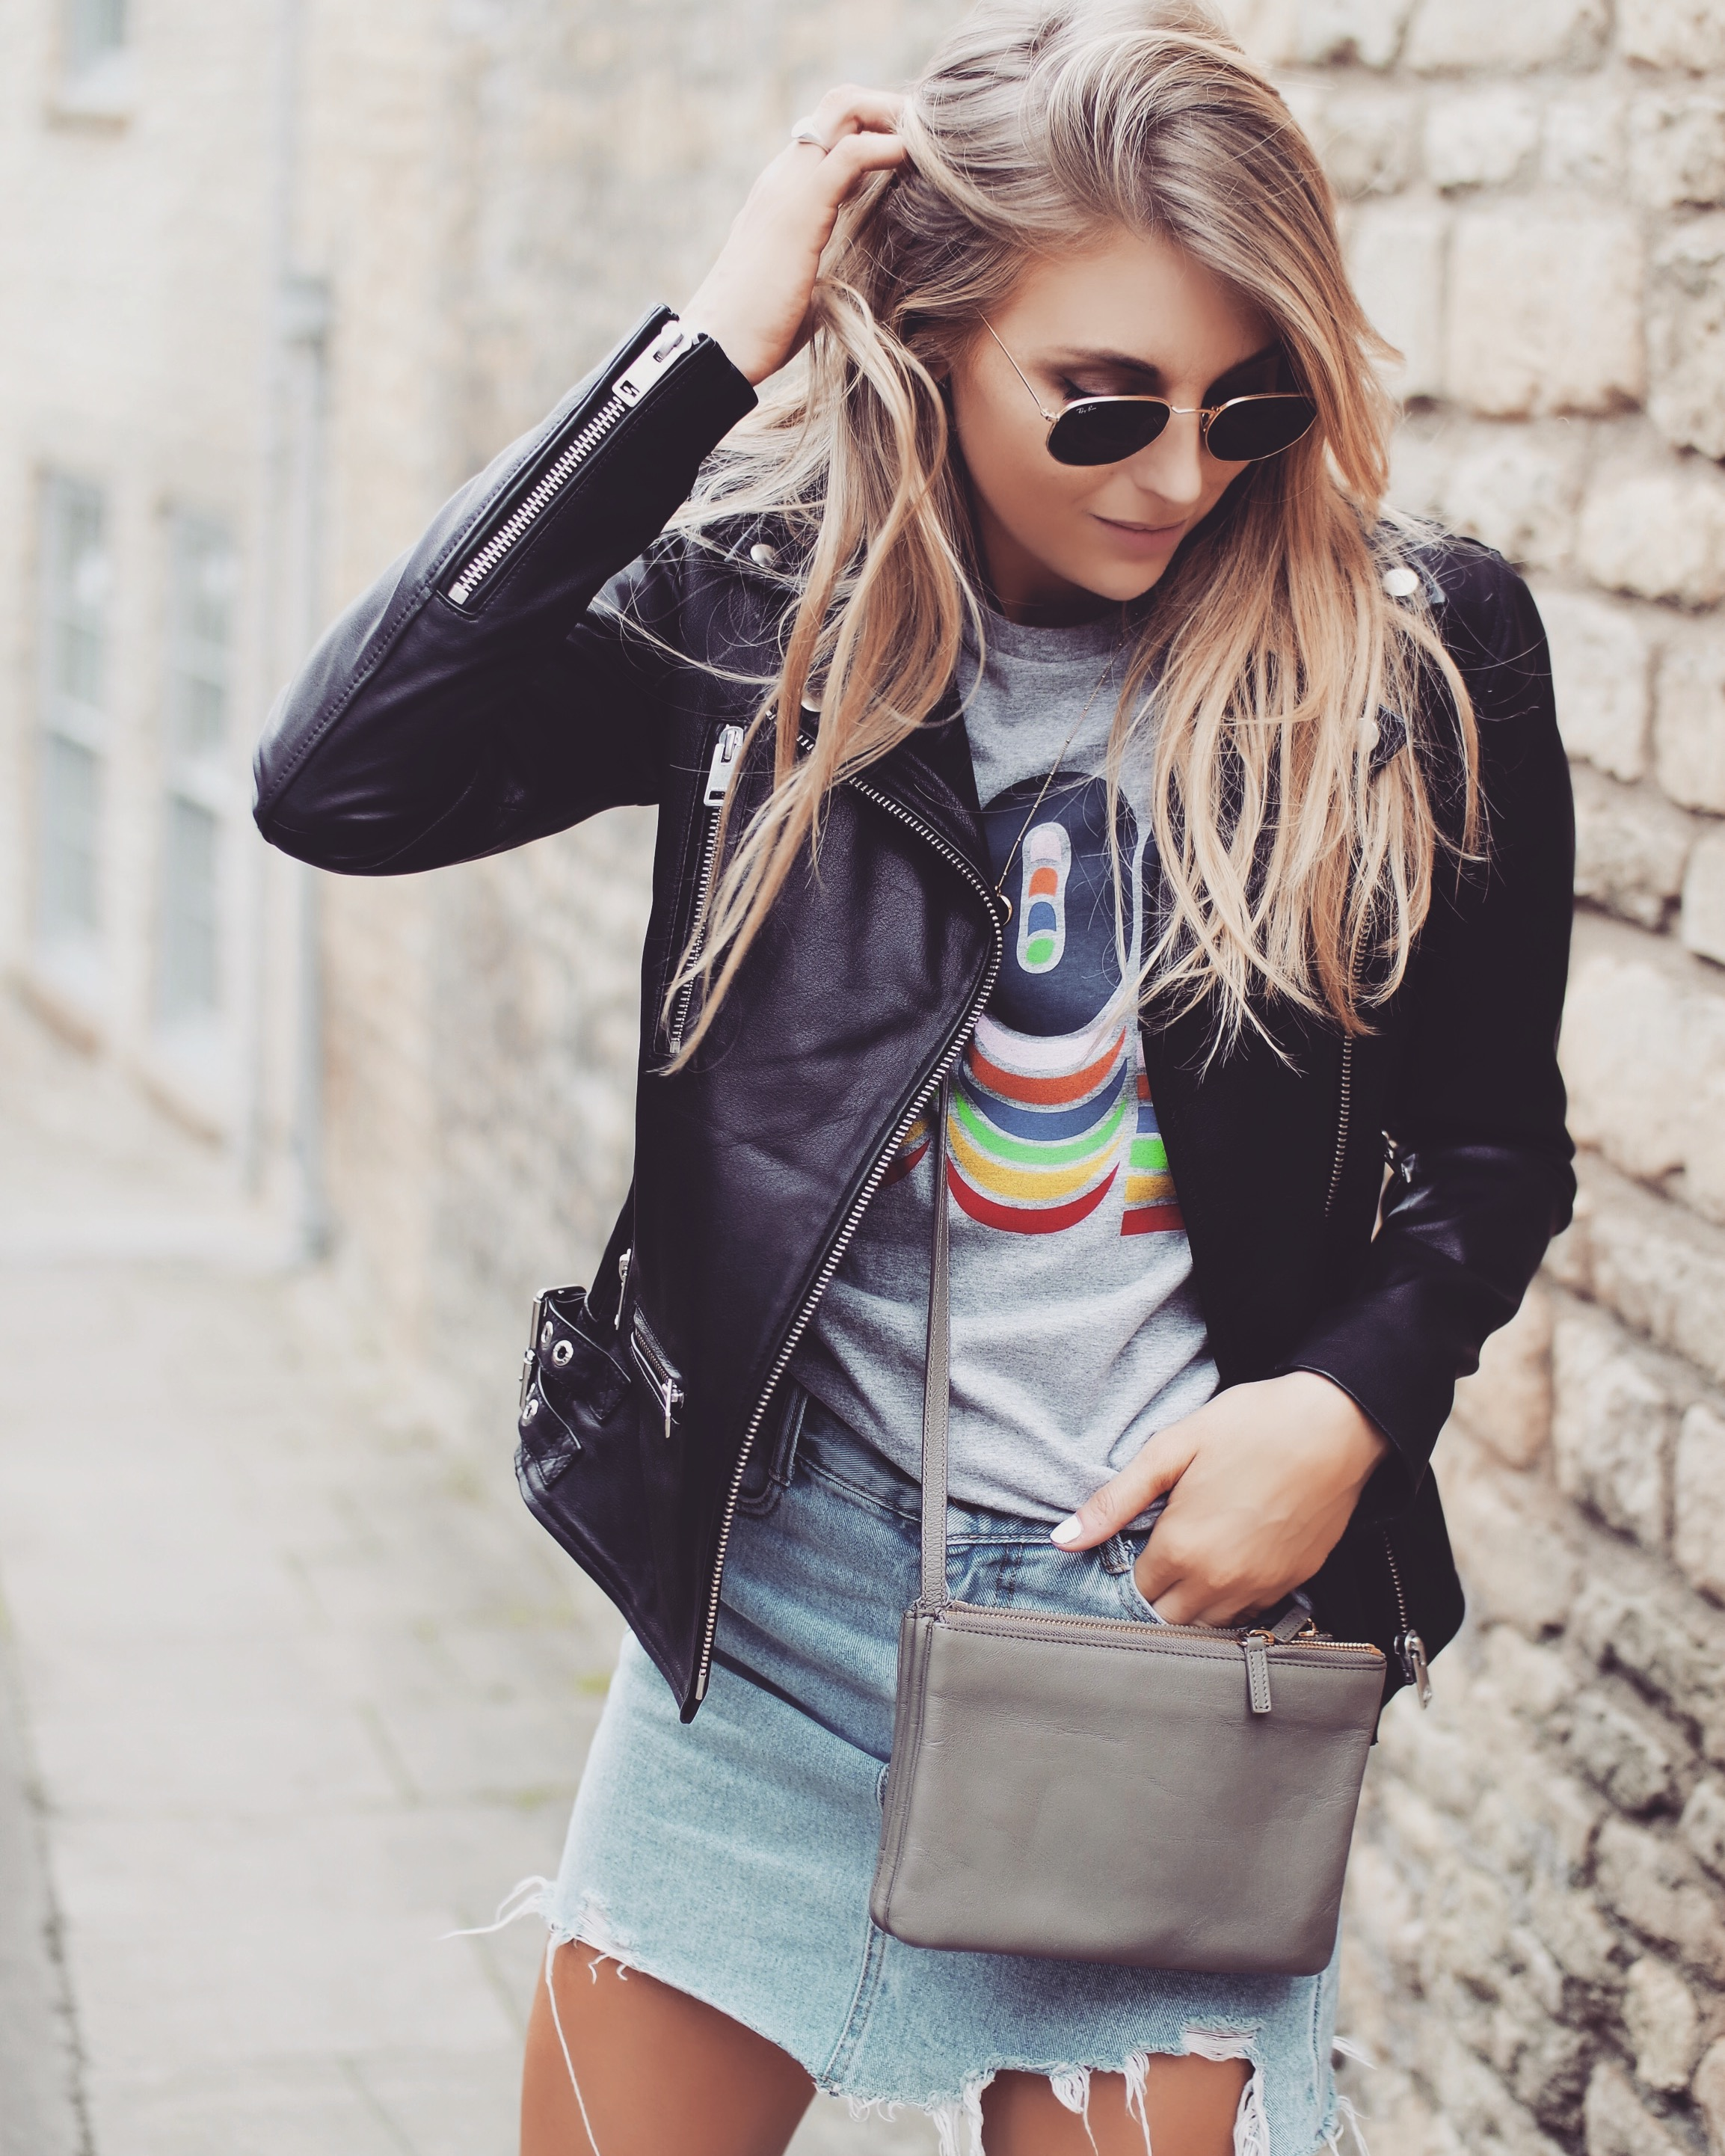 Investing In Street Appeal With Style: Leather Jacket - Fashion Blogger Street Style